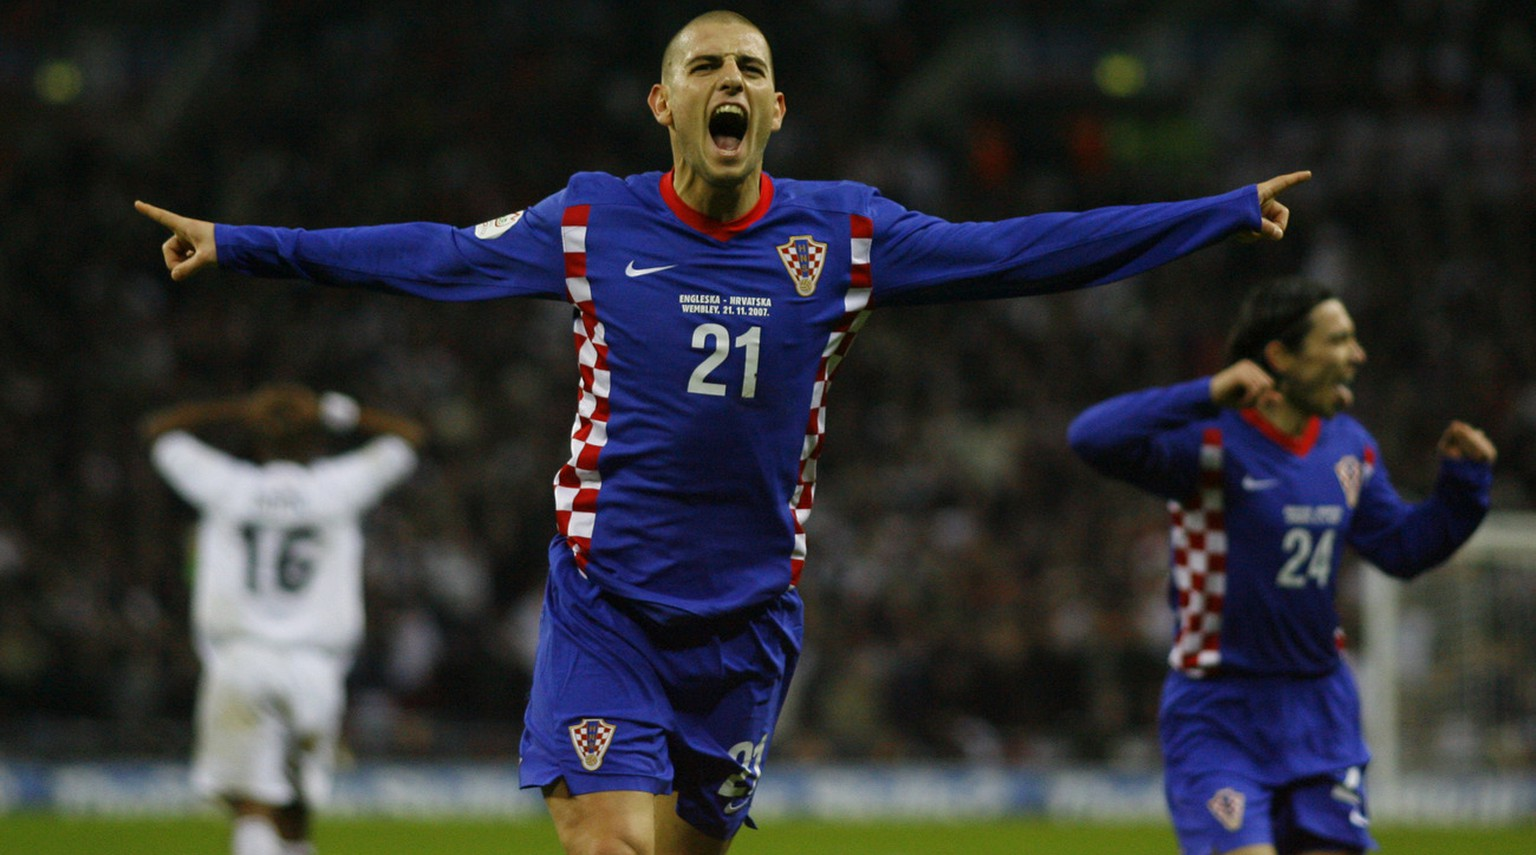 Croatia's Mladen Petric celebrates after scoring his side's winning goal during the Euro 2008 group E qualifying soccer match between England and Croatia at Wembley Stadium in London, Wednesday Nov. 21, 2007.  England failed to qualify for the tournament on Wednesday after losing at Wembley 3-2 to Croatia.  (AP Photo/Tom Hevezi)